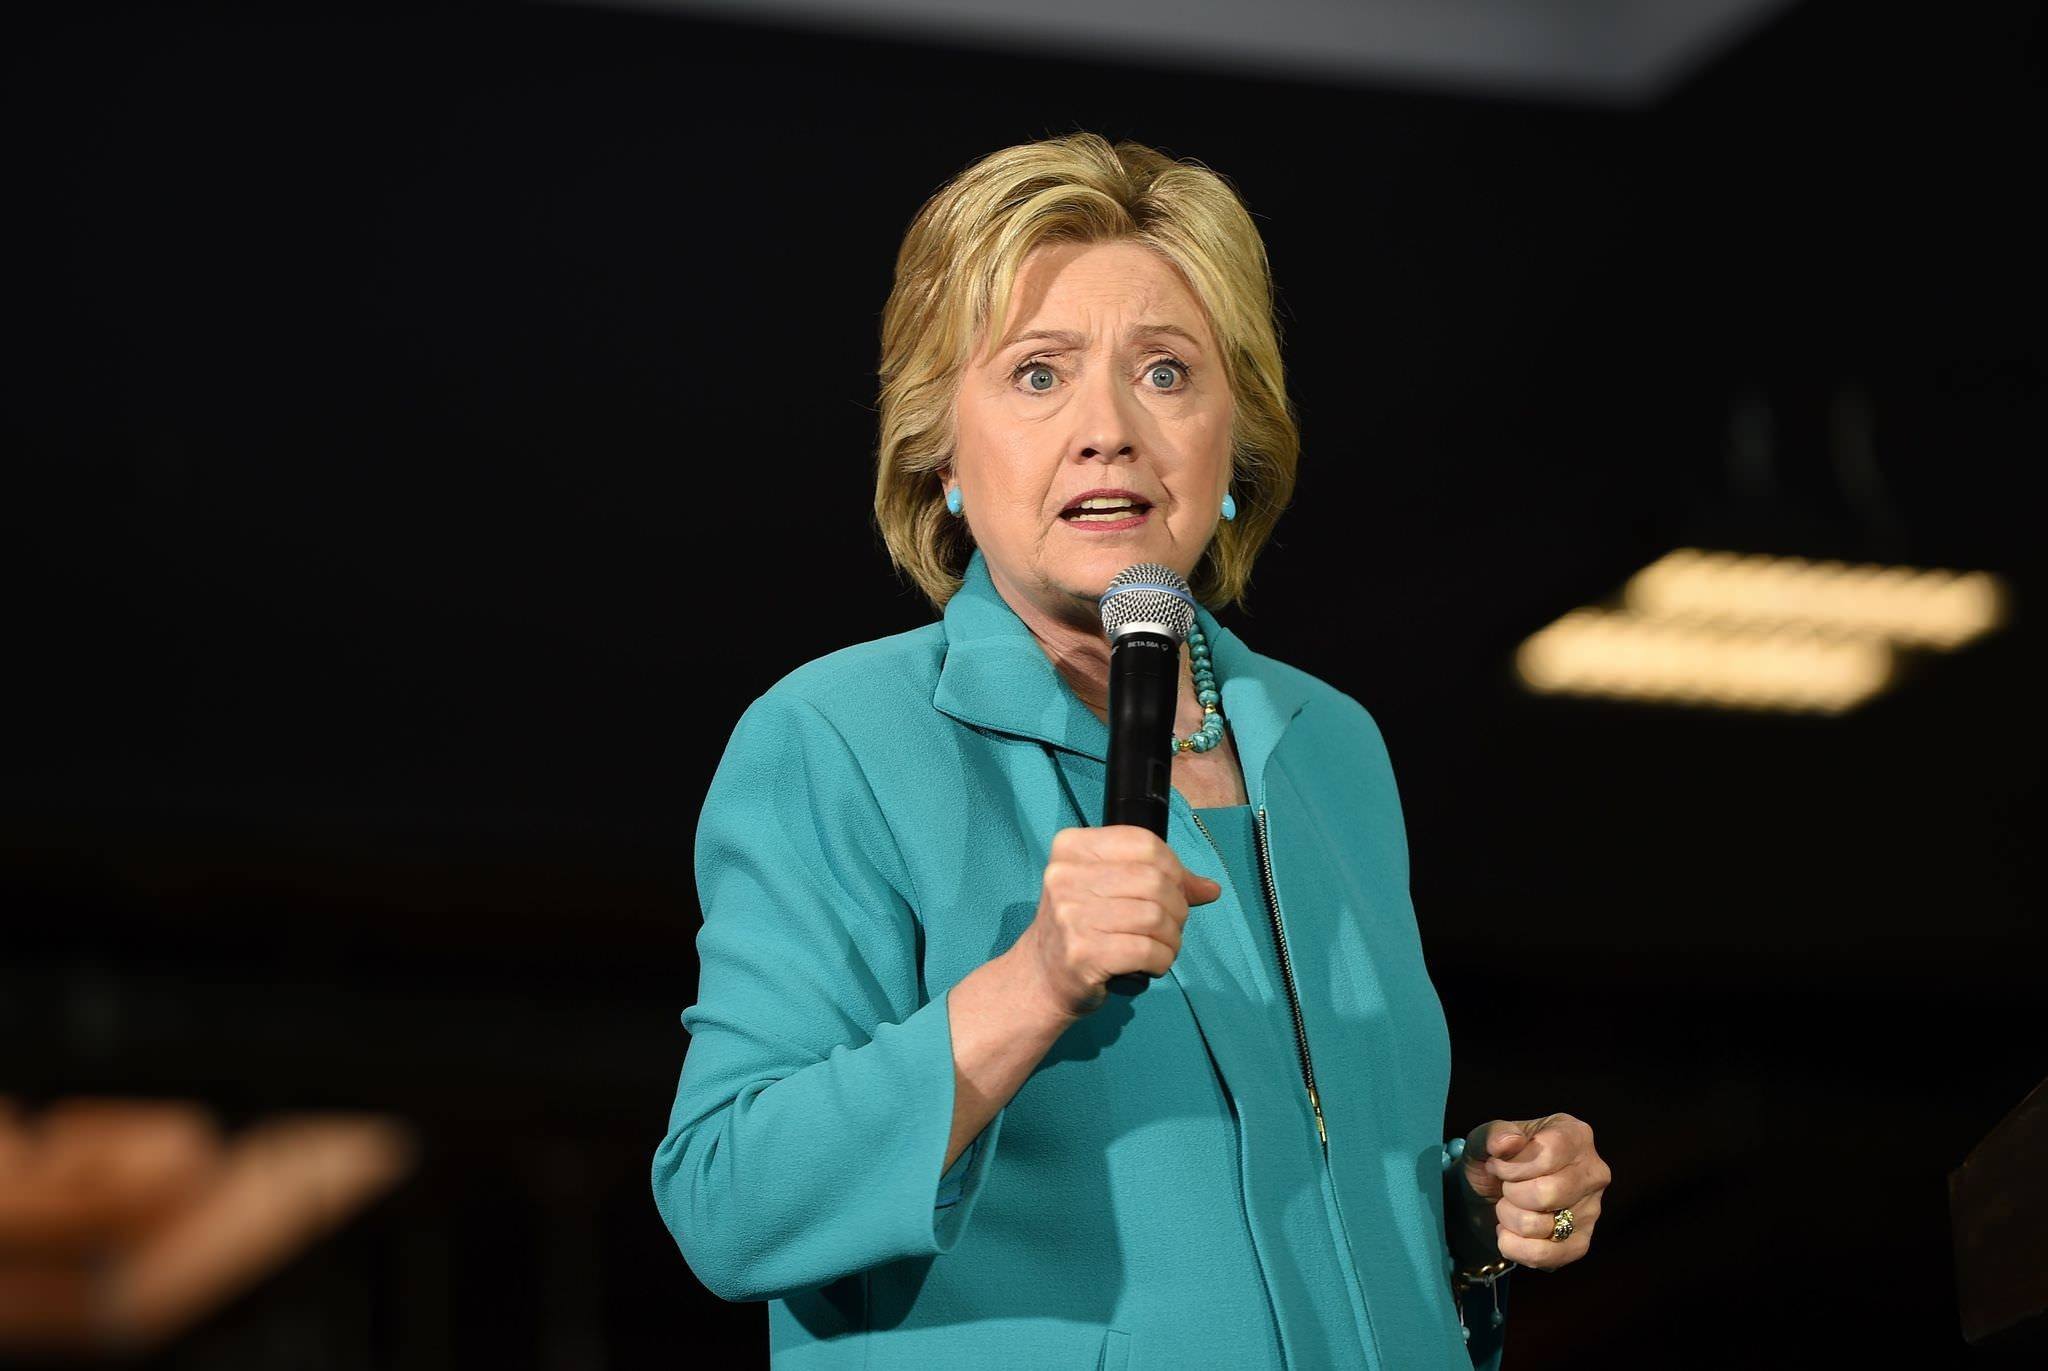 This file photo taken on May 23, 2016 shows Hillary Clinton speaking at the IBEW Local 11 union hall during a campaign event in Commerce, California. (AFP Photo)